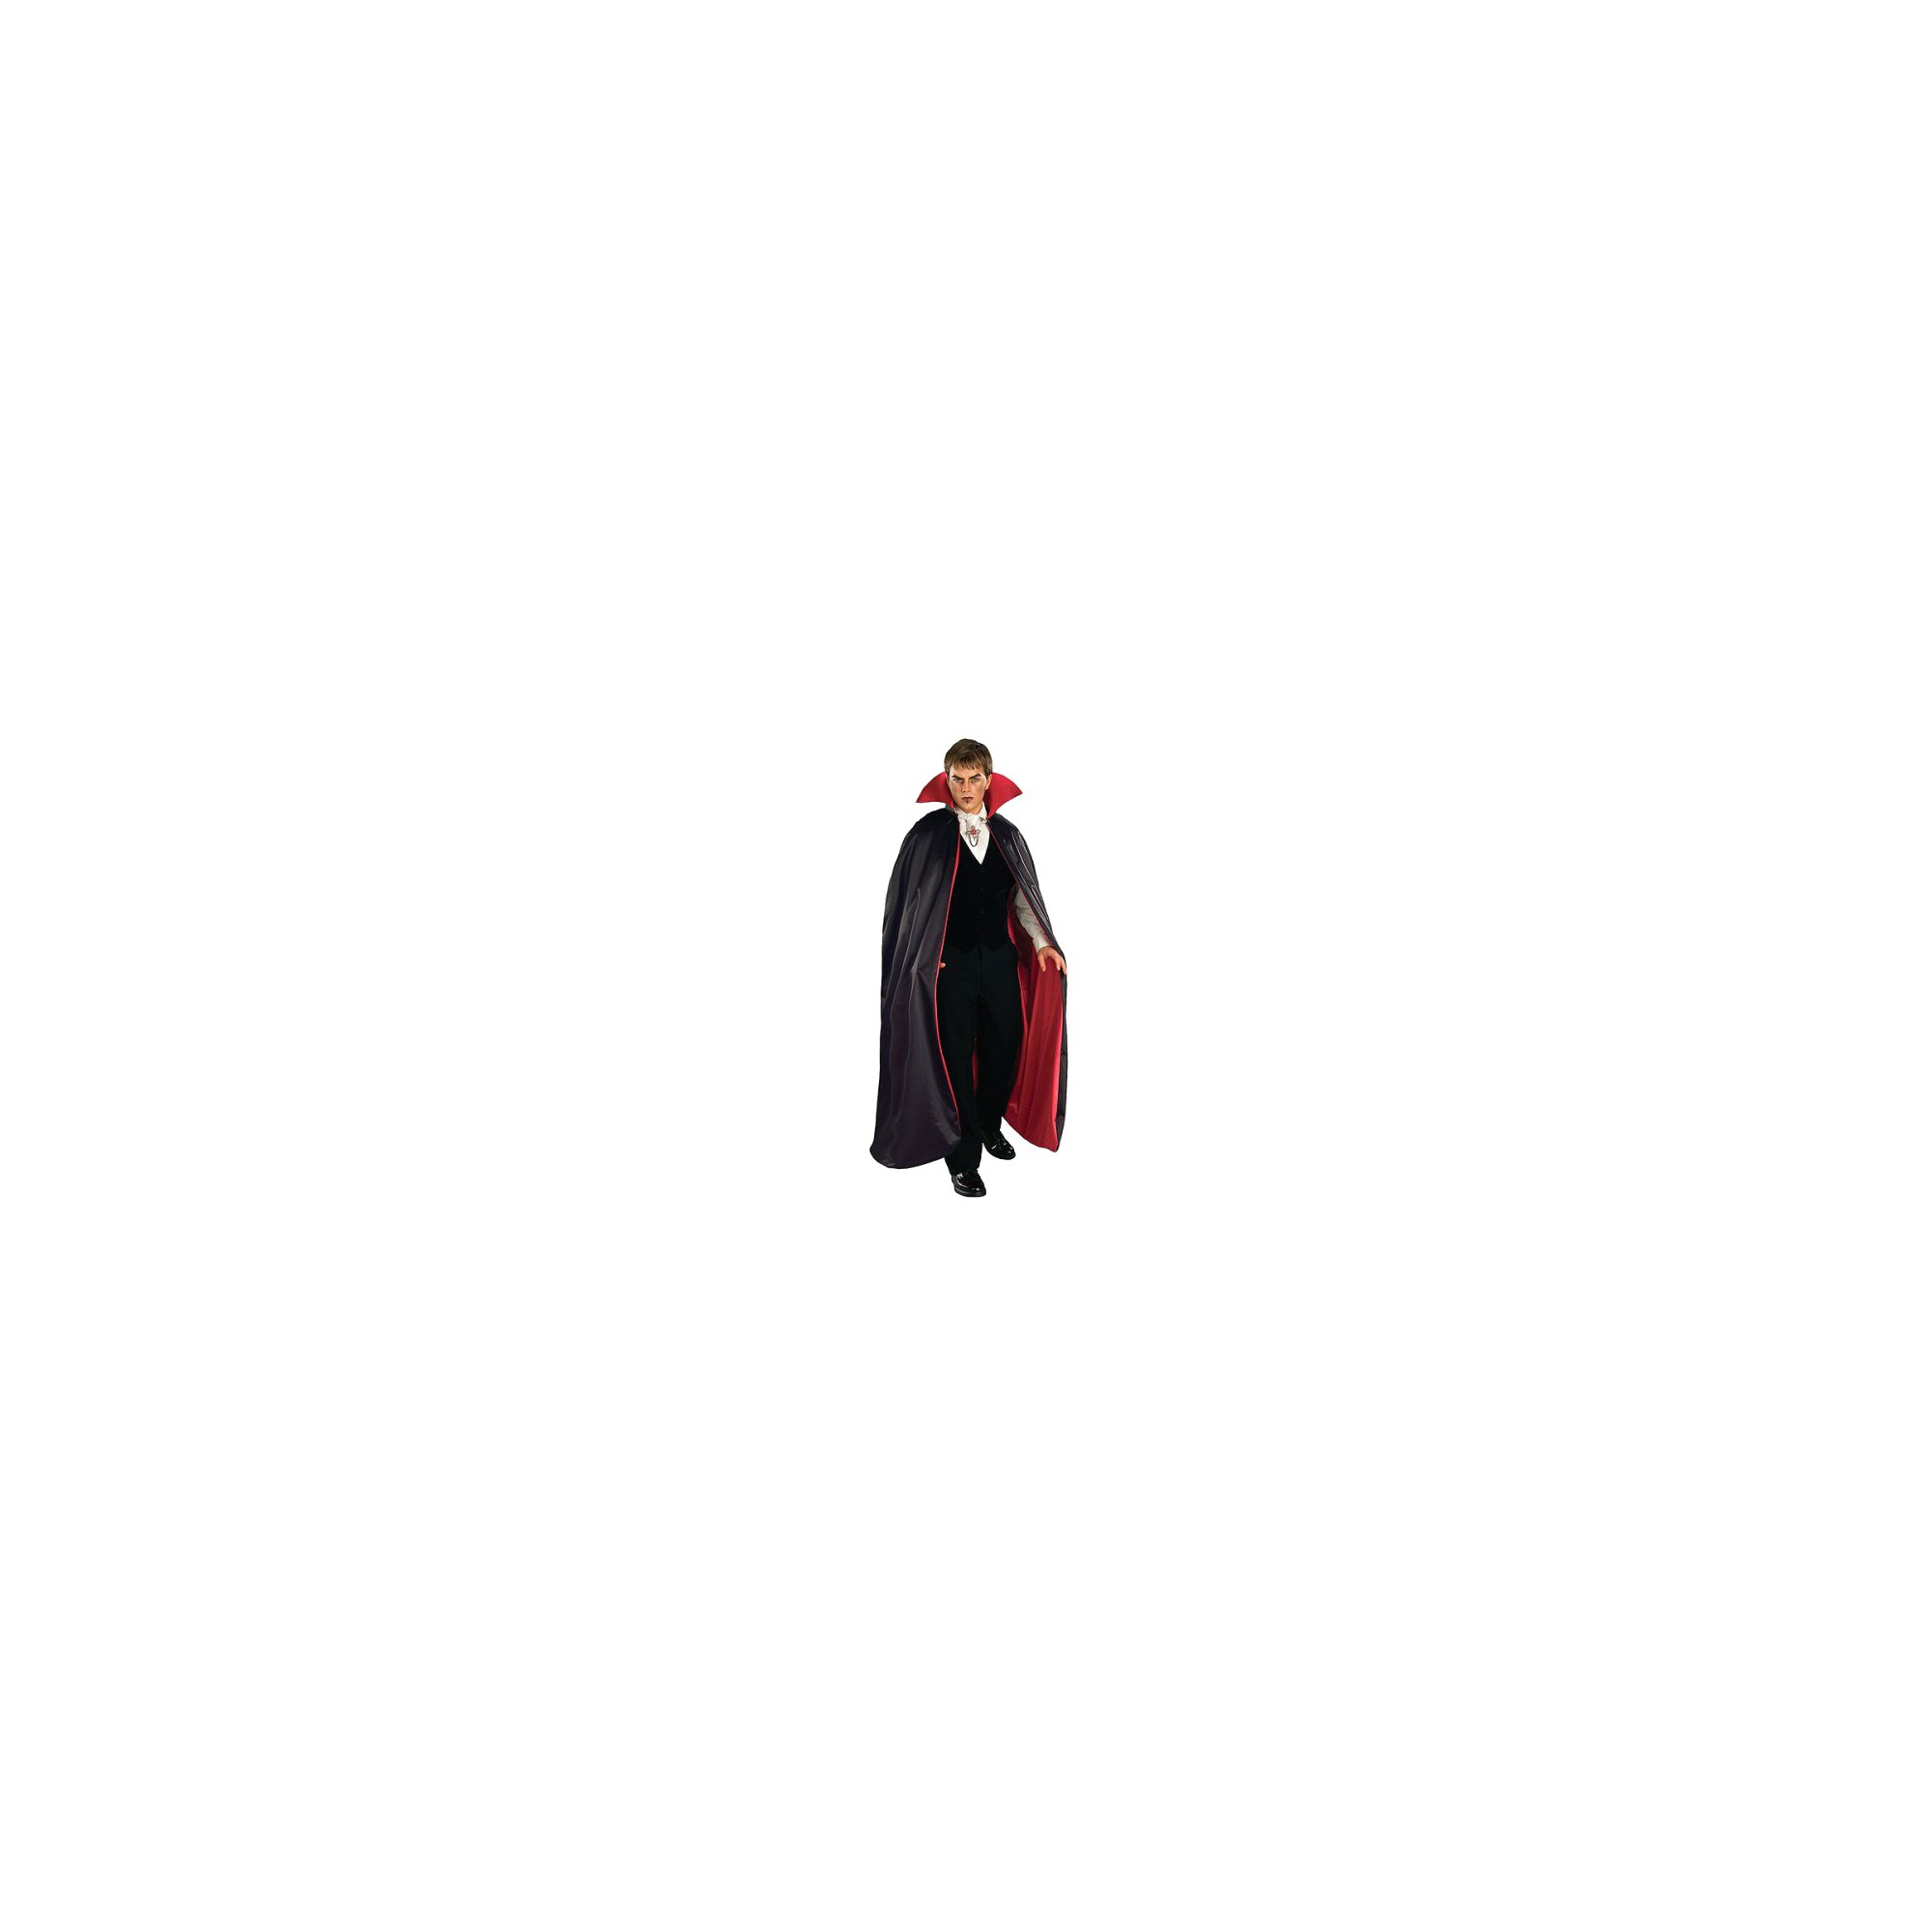 Halloween Adult Lined Vampire Cape Costume Red/Black, Adult Unisex, Black/Red